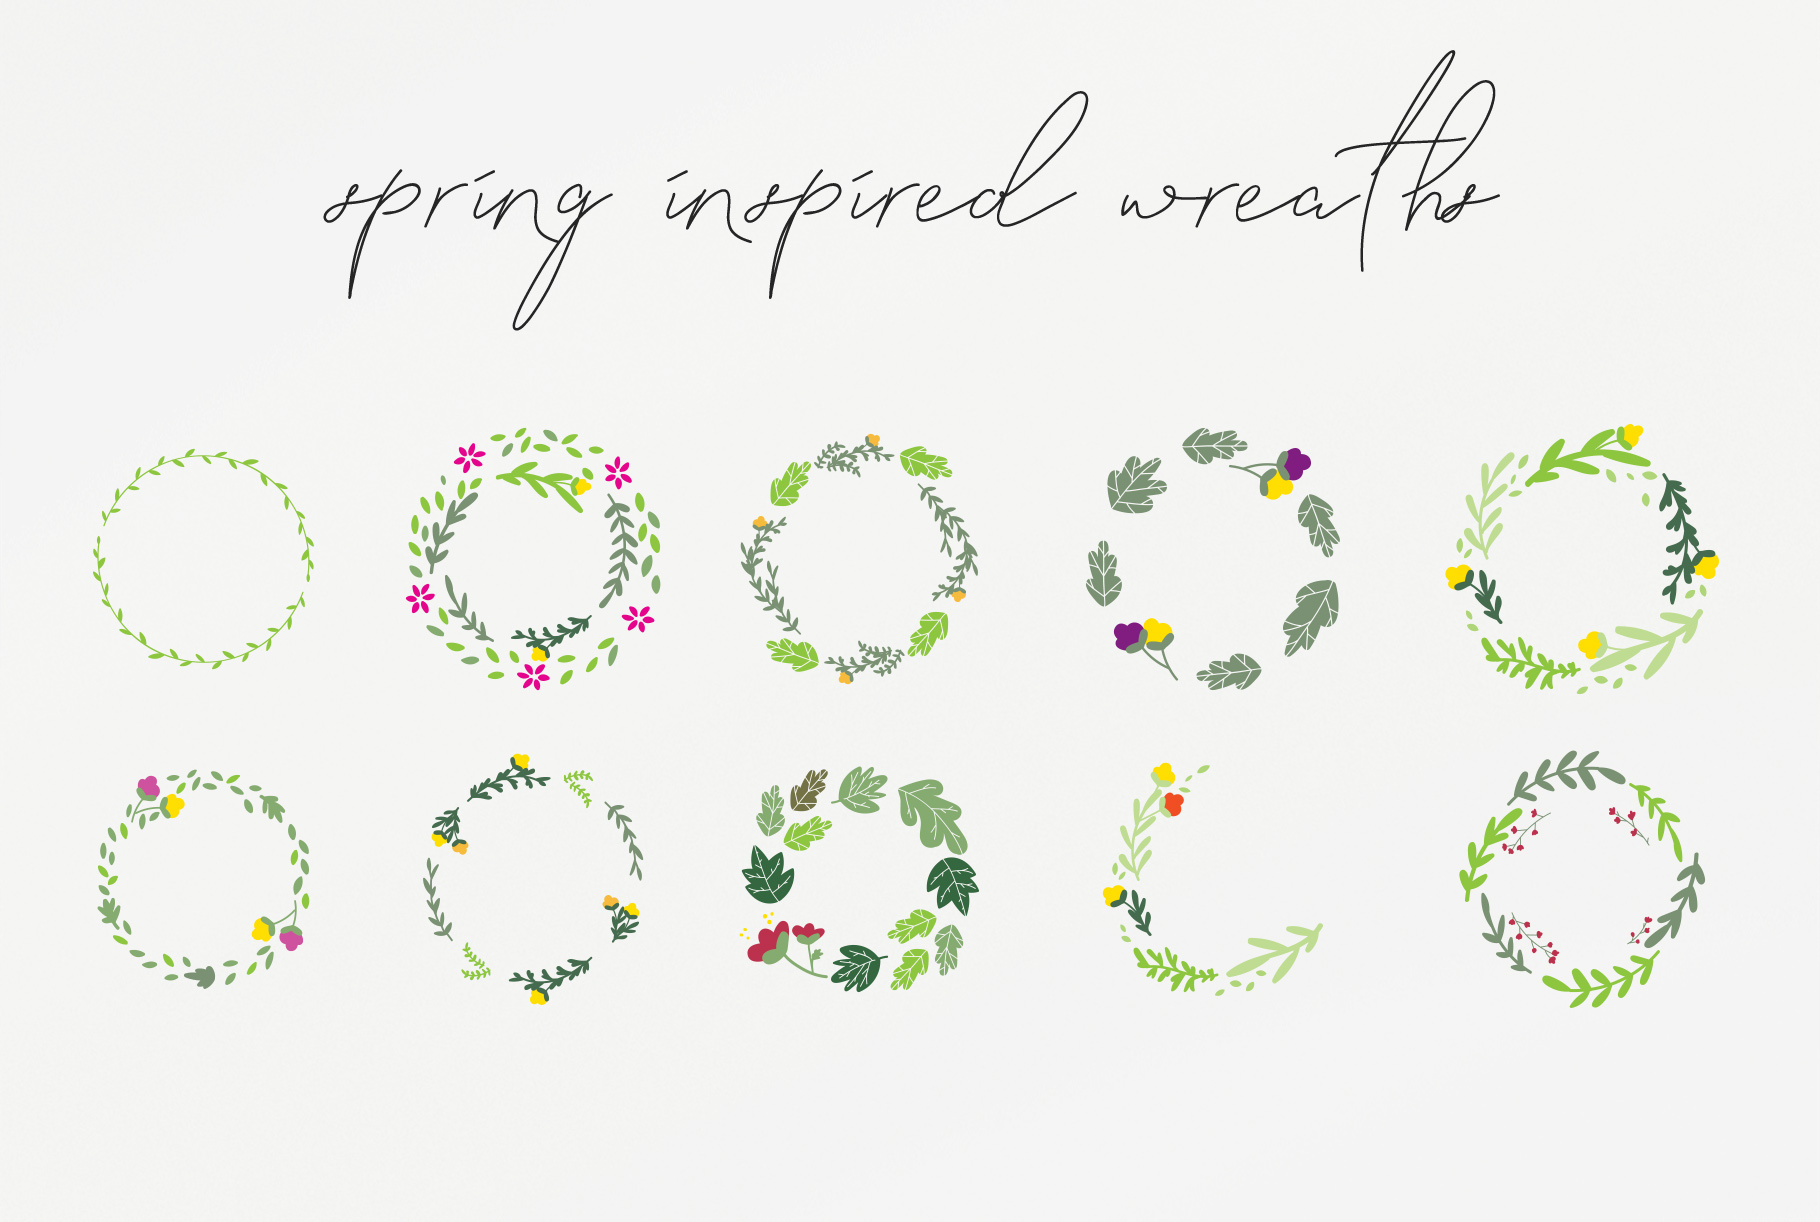 20 Spring Wreaths Vector Pack example image 3